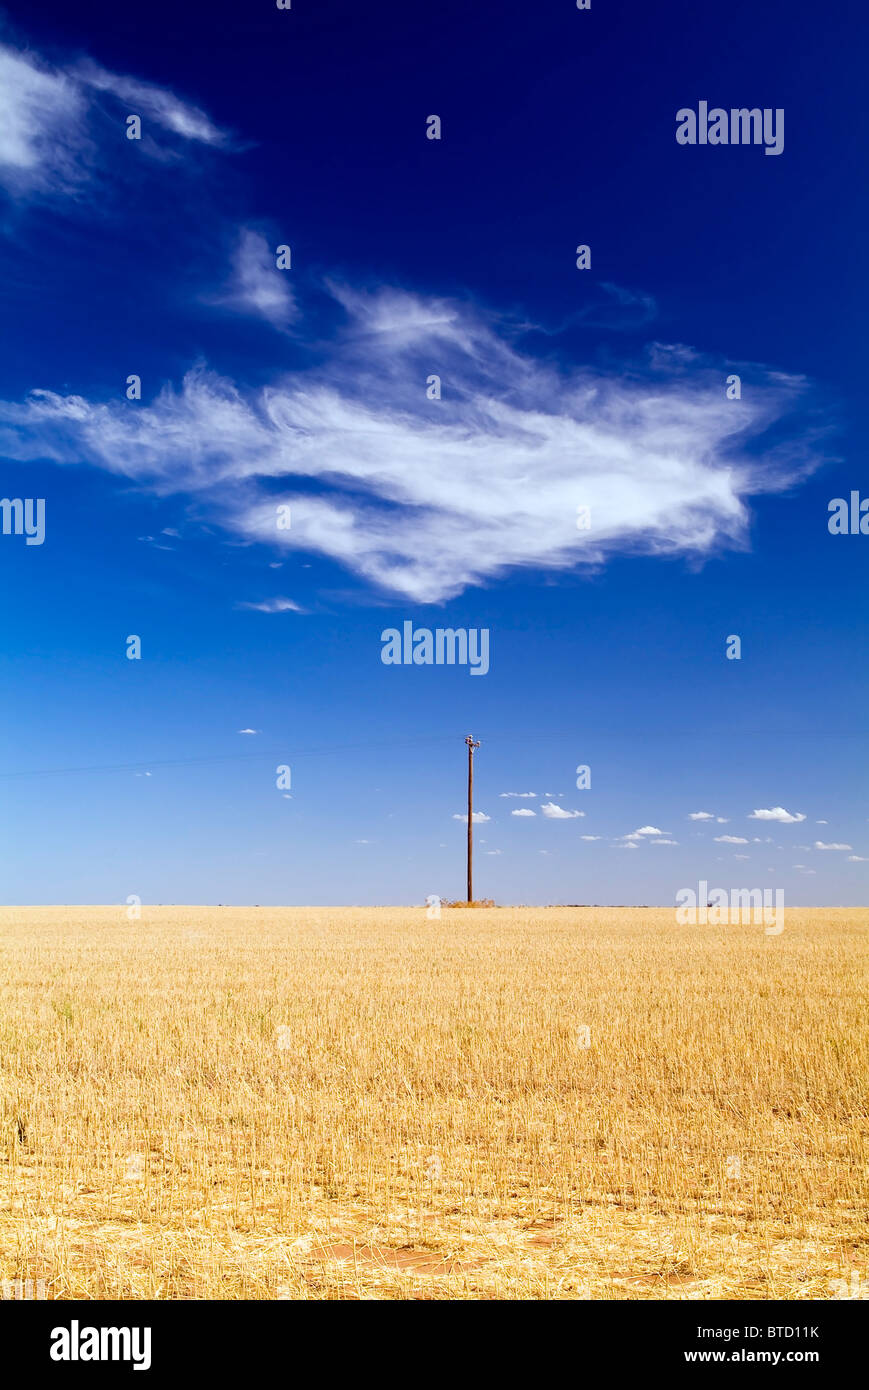 Wheat fields in country Australia with a single power pole and cloud - Stock Image